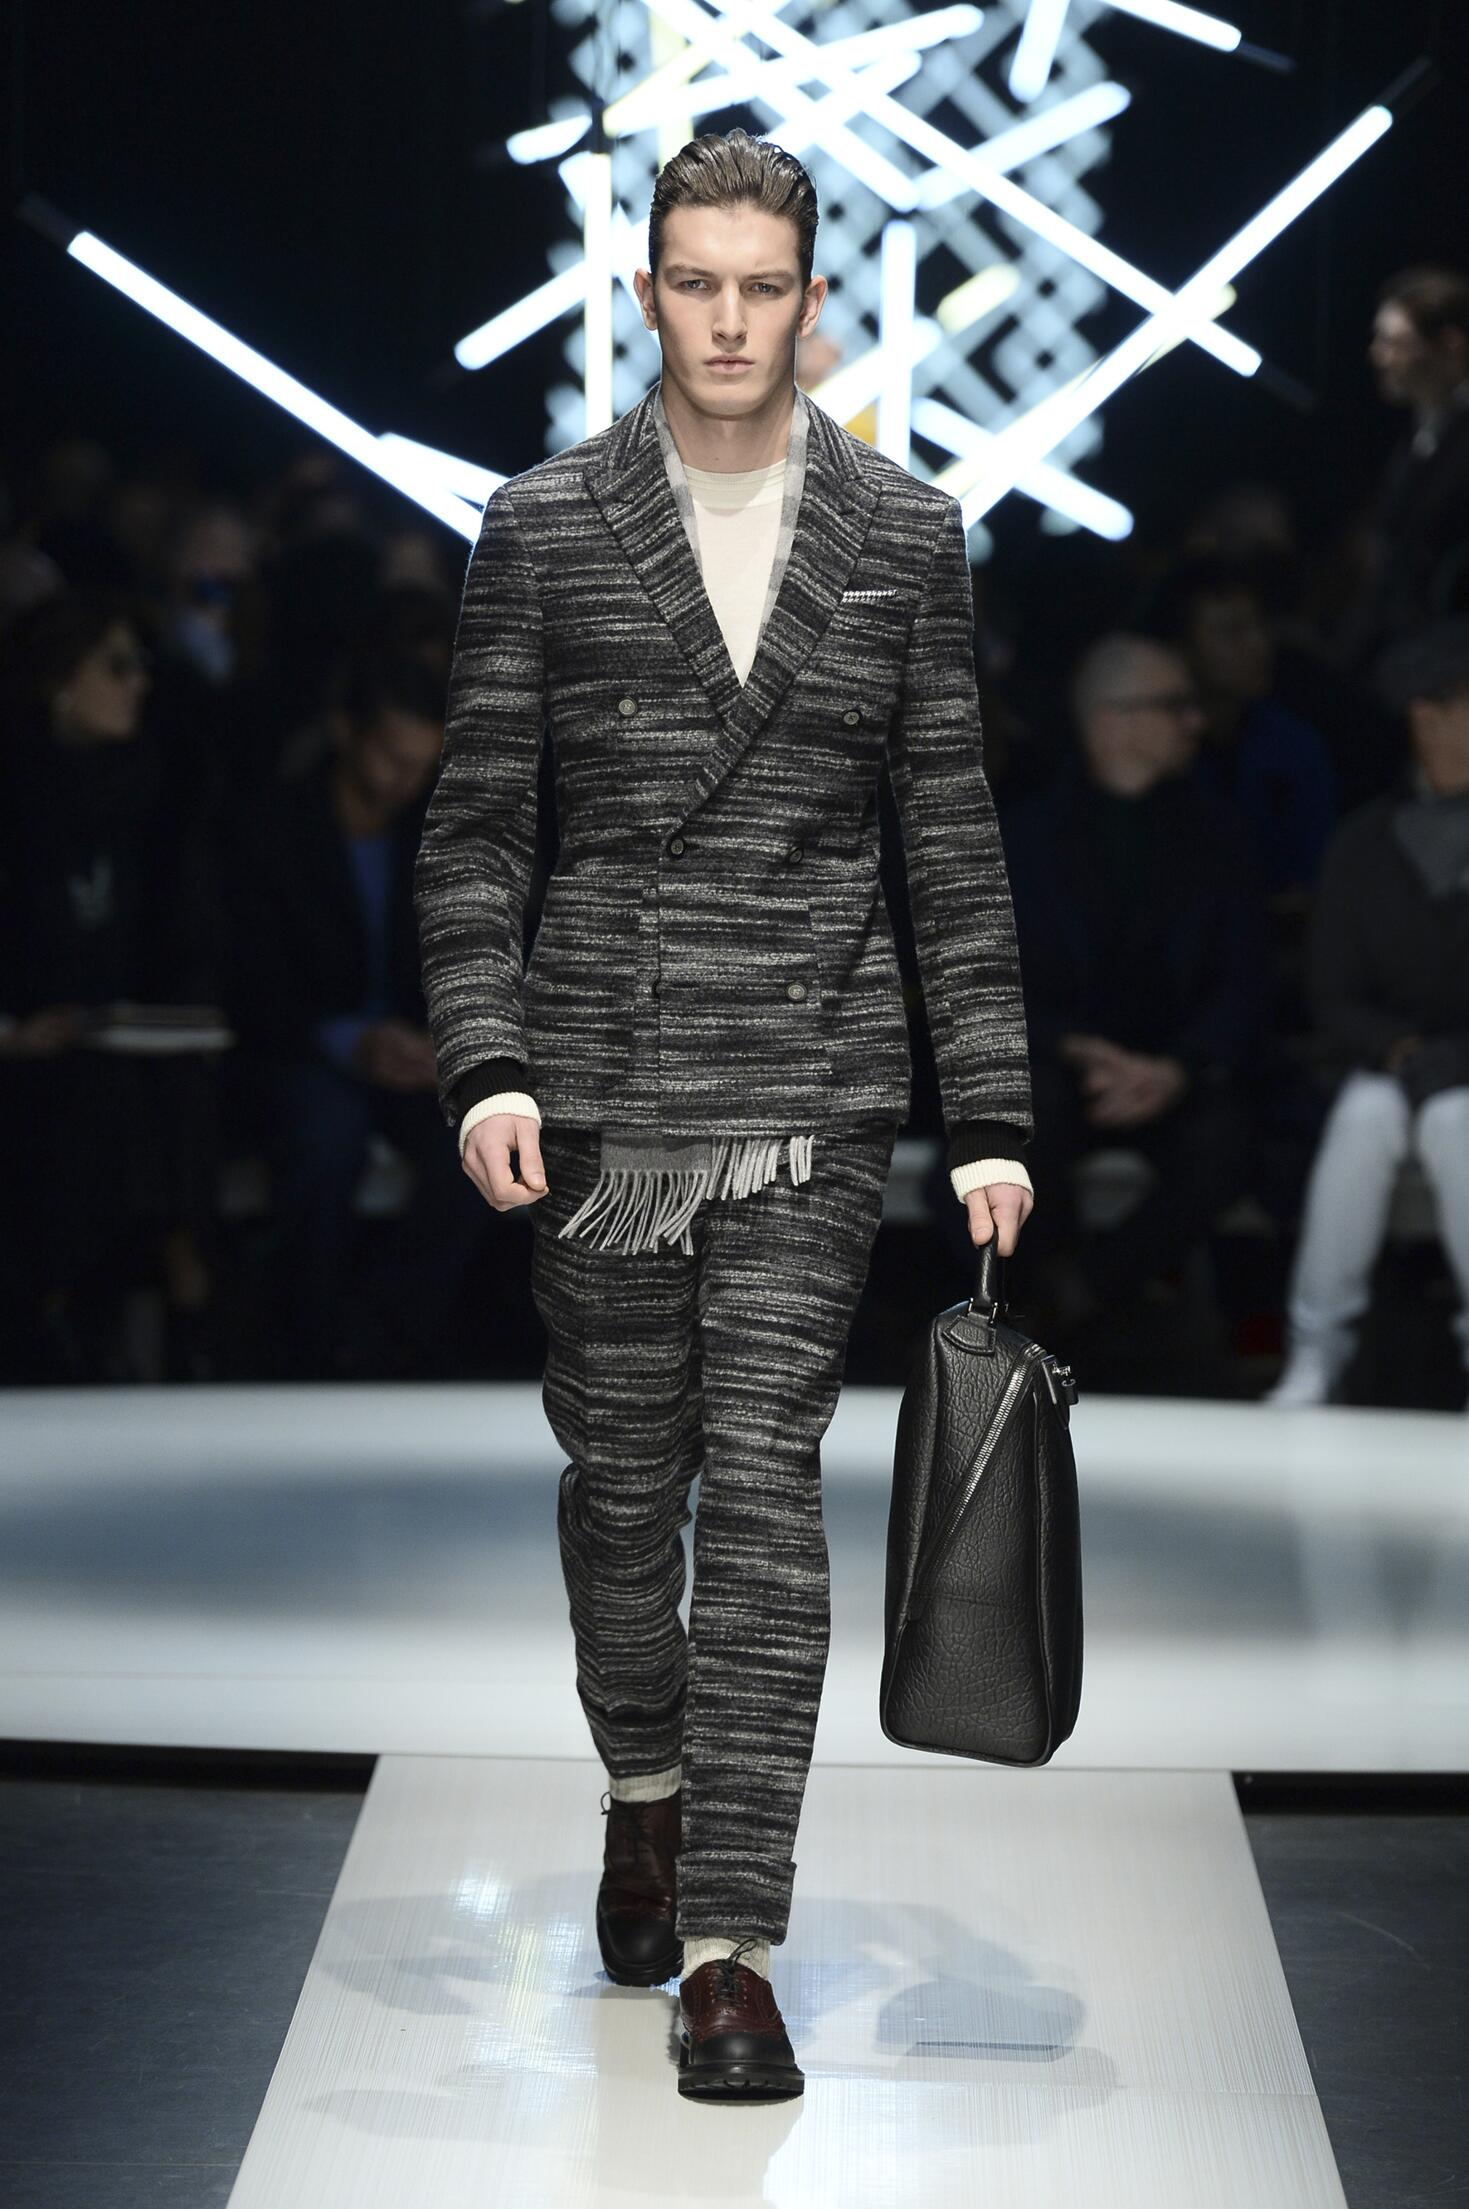 Canali Fall Winter 2015 16 Men's Collection Milan Fashion Week Fashion Show